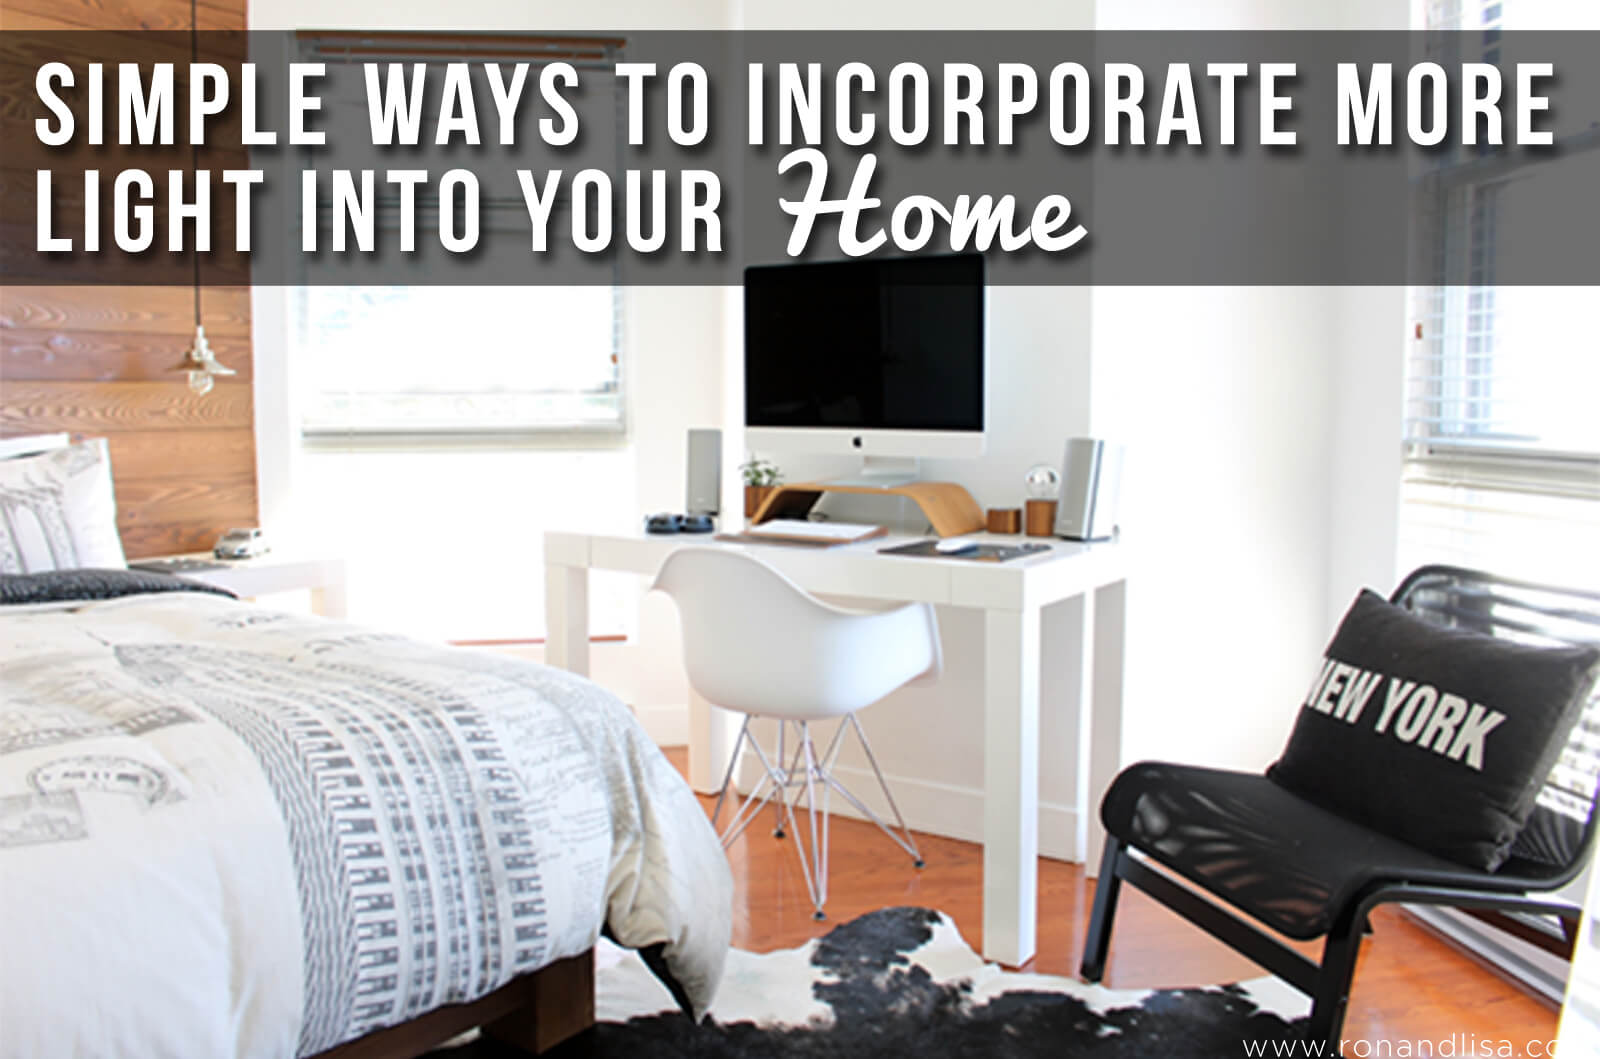 Simple Ways to Incorporate More Light into Your Home